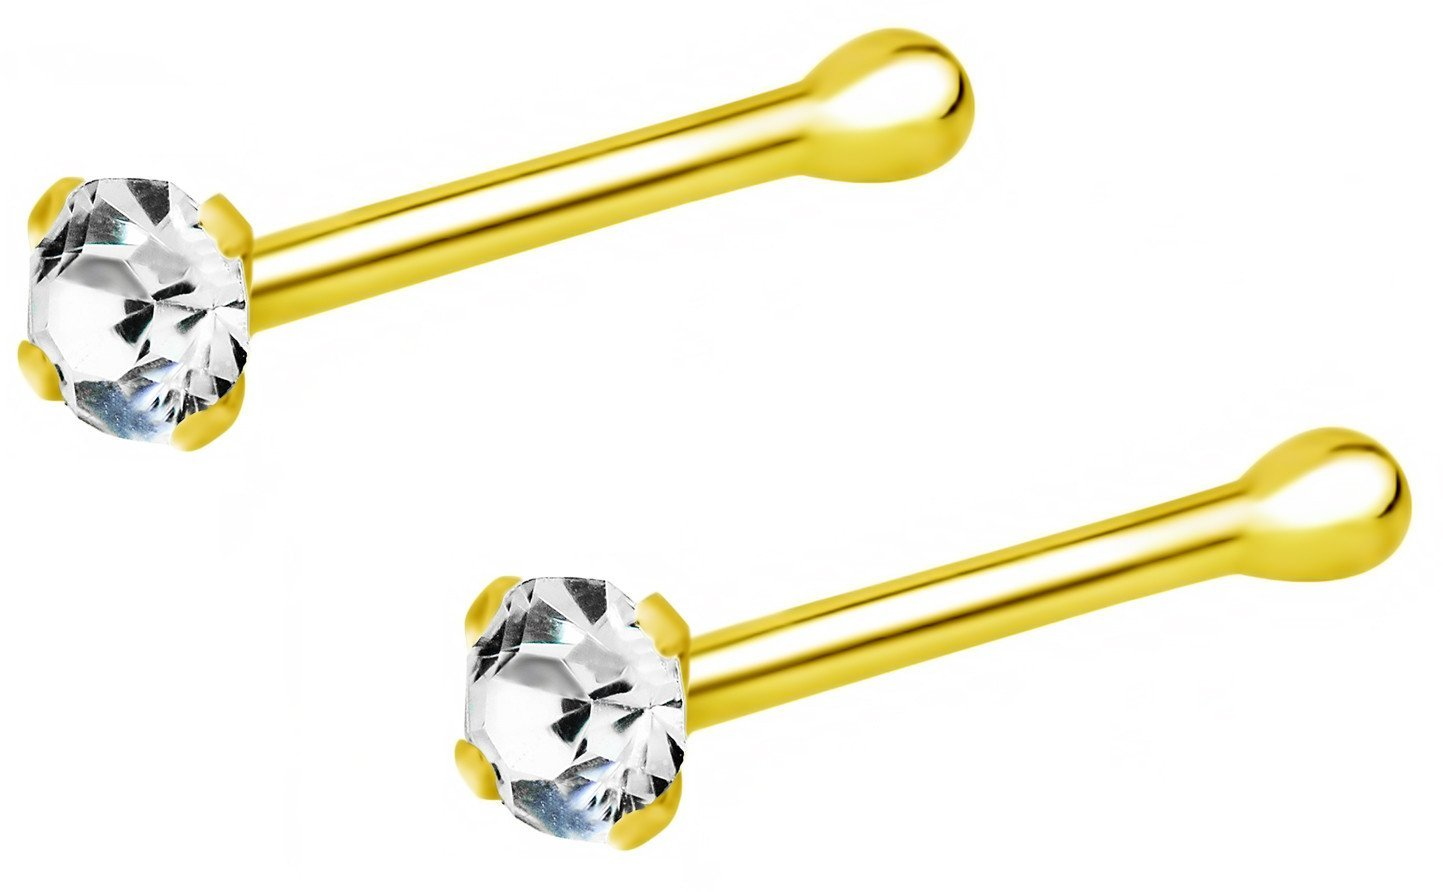 Forbidden Body Jewelry Set of 2: 22g 18k Gold Plated Sterling Silver CZ Simulated Diamond Micro Nose Stud, 1.5mm Crystal by Forbidden Body Jewelry